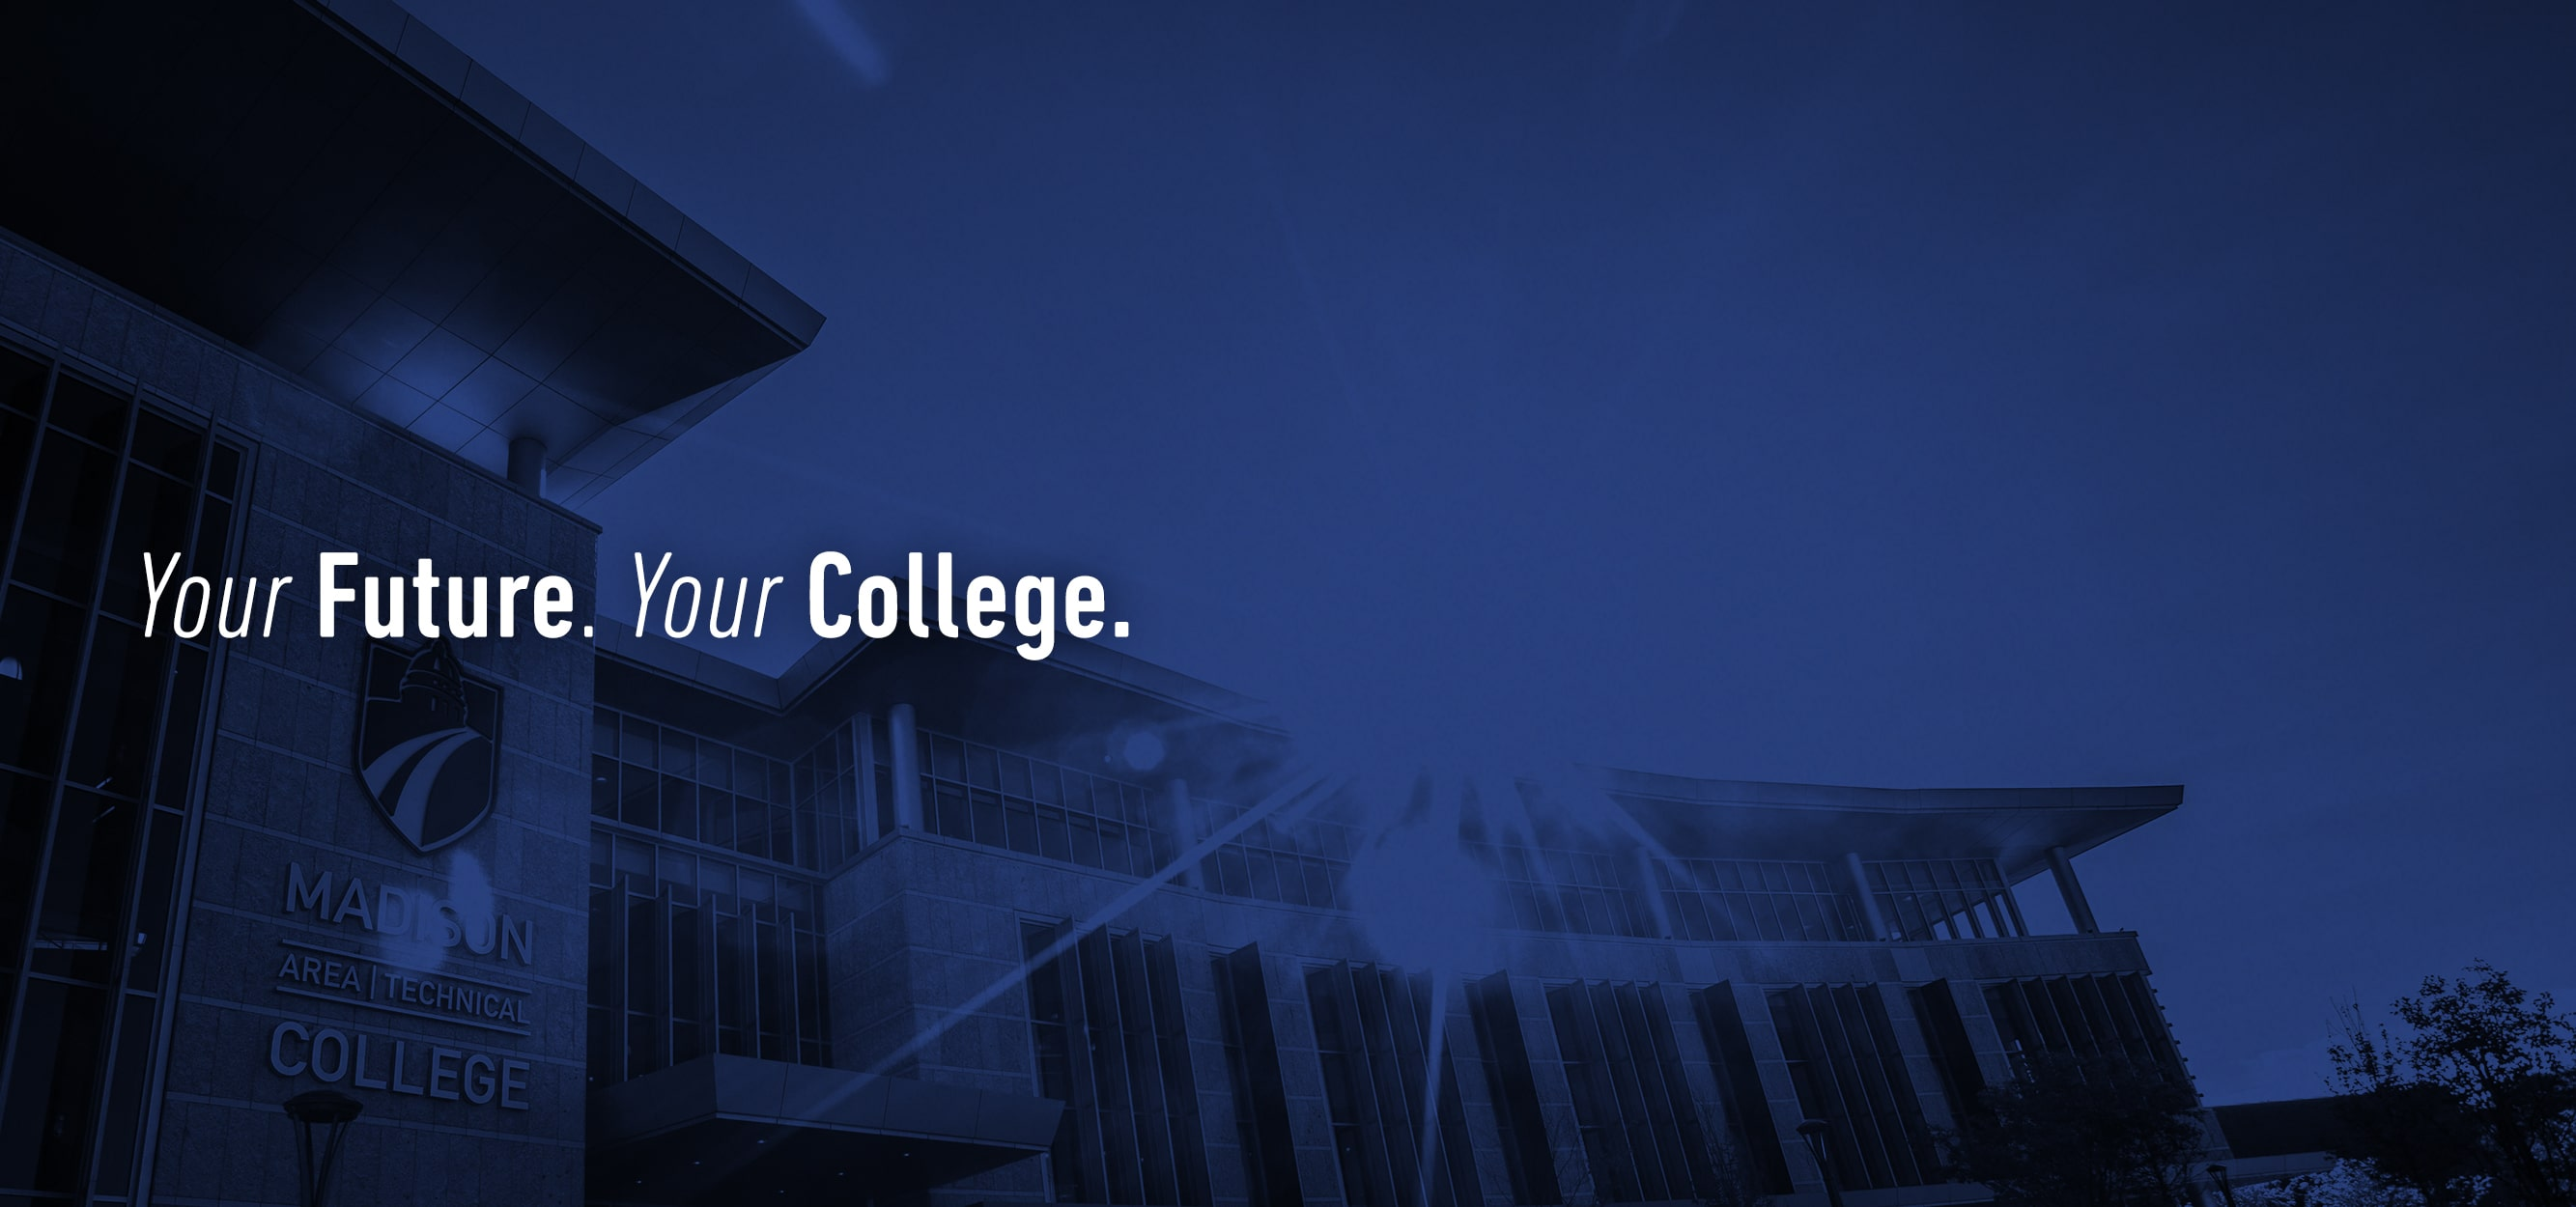 Your Future. Your College.